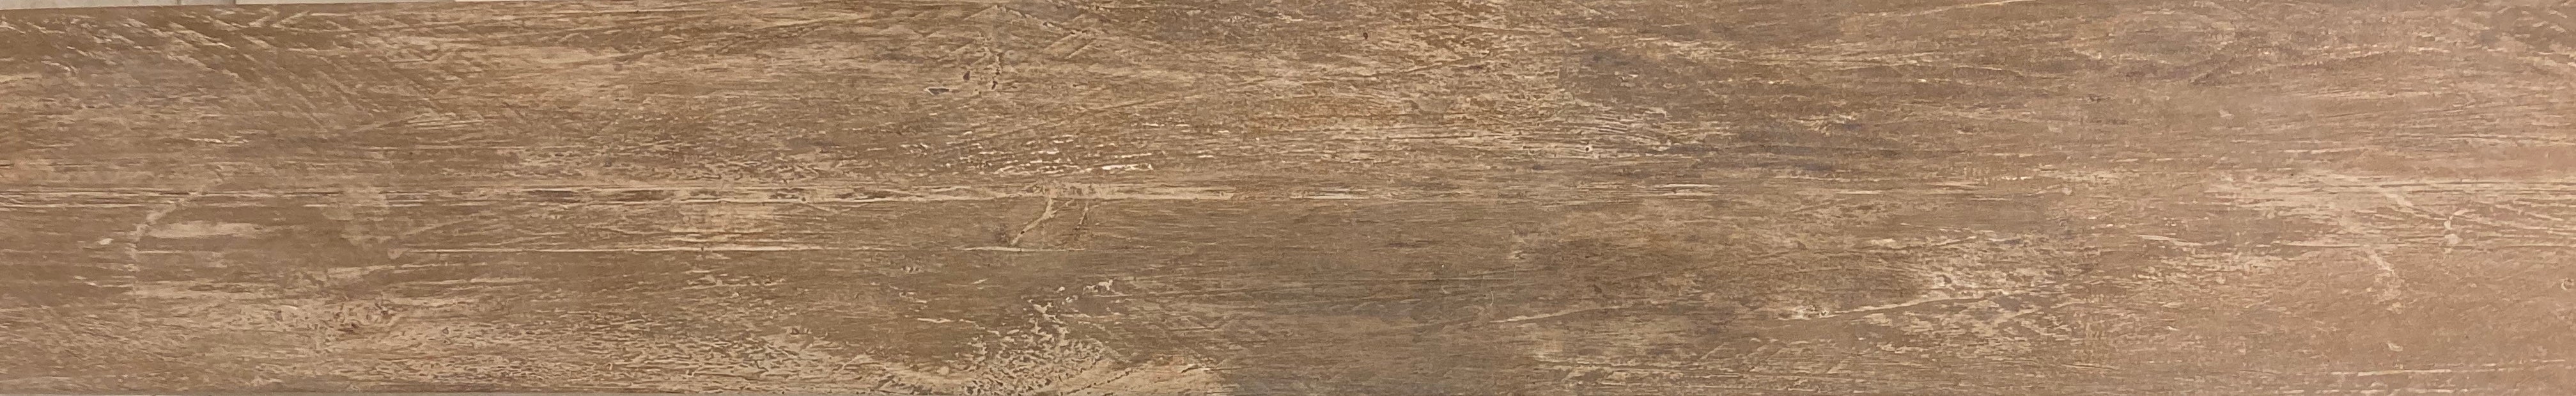 Italian, Wood effect porcelain floor tiles 15x100cm